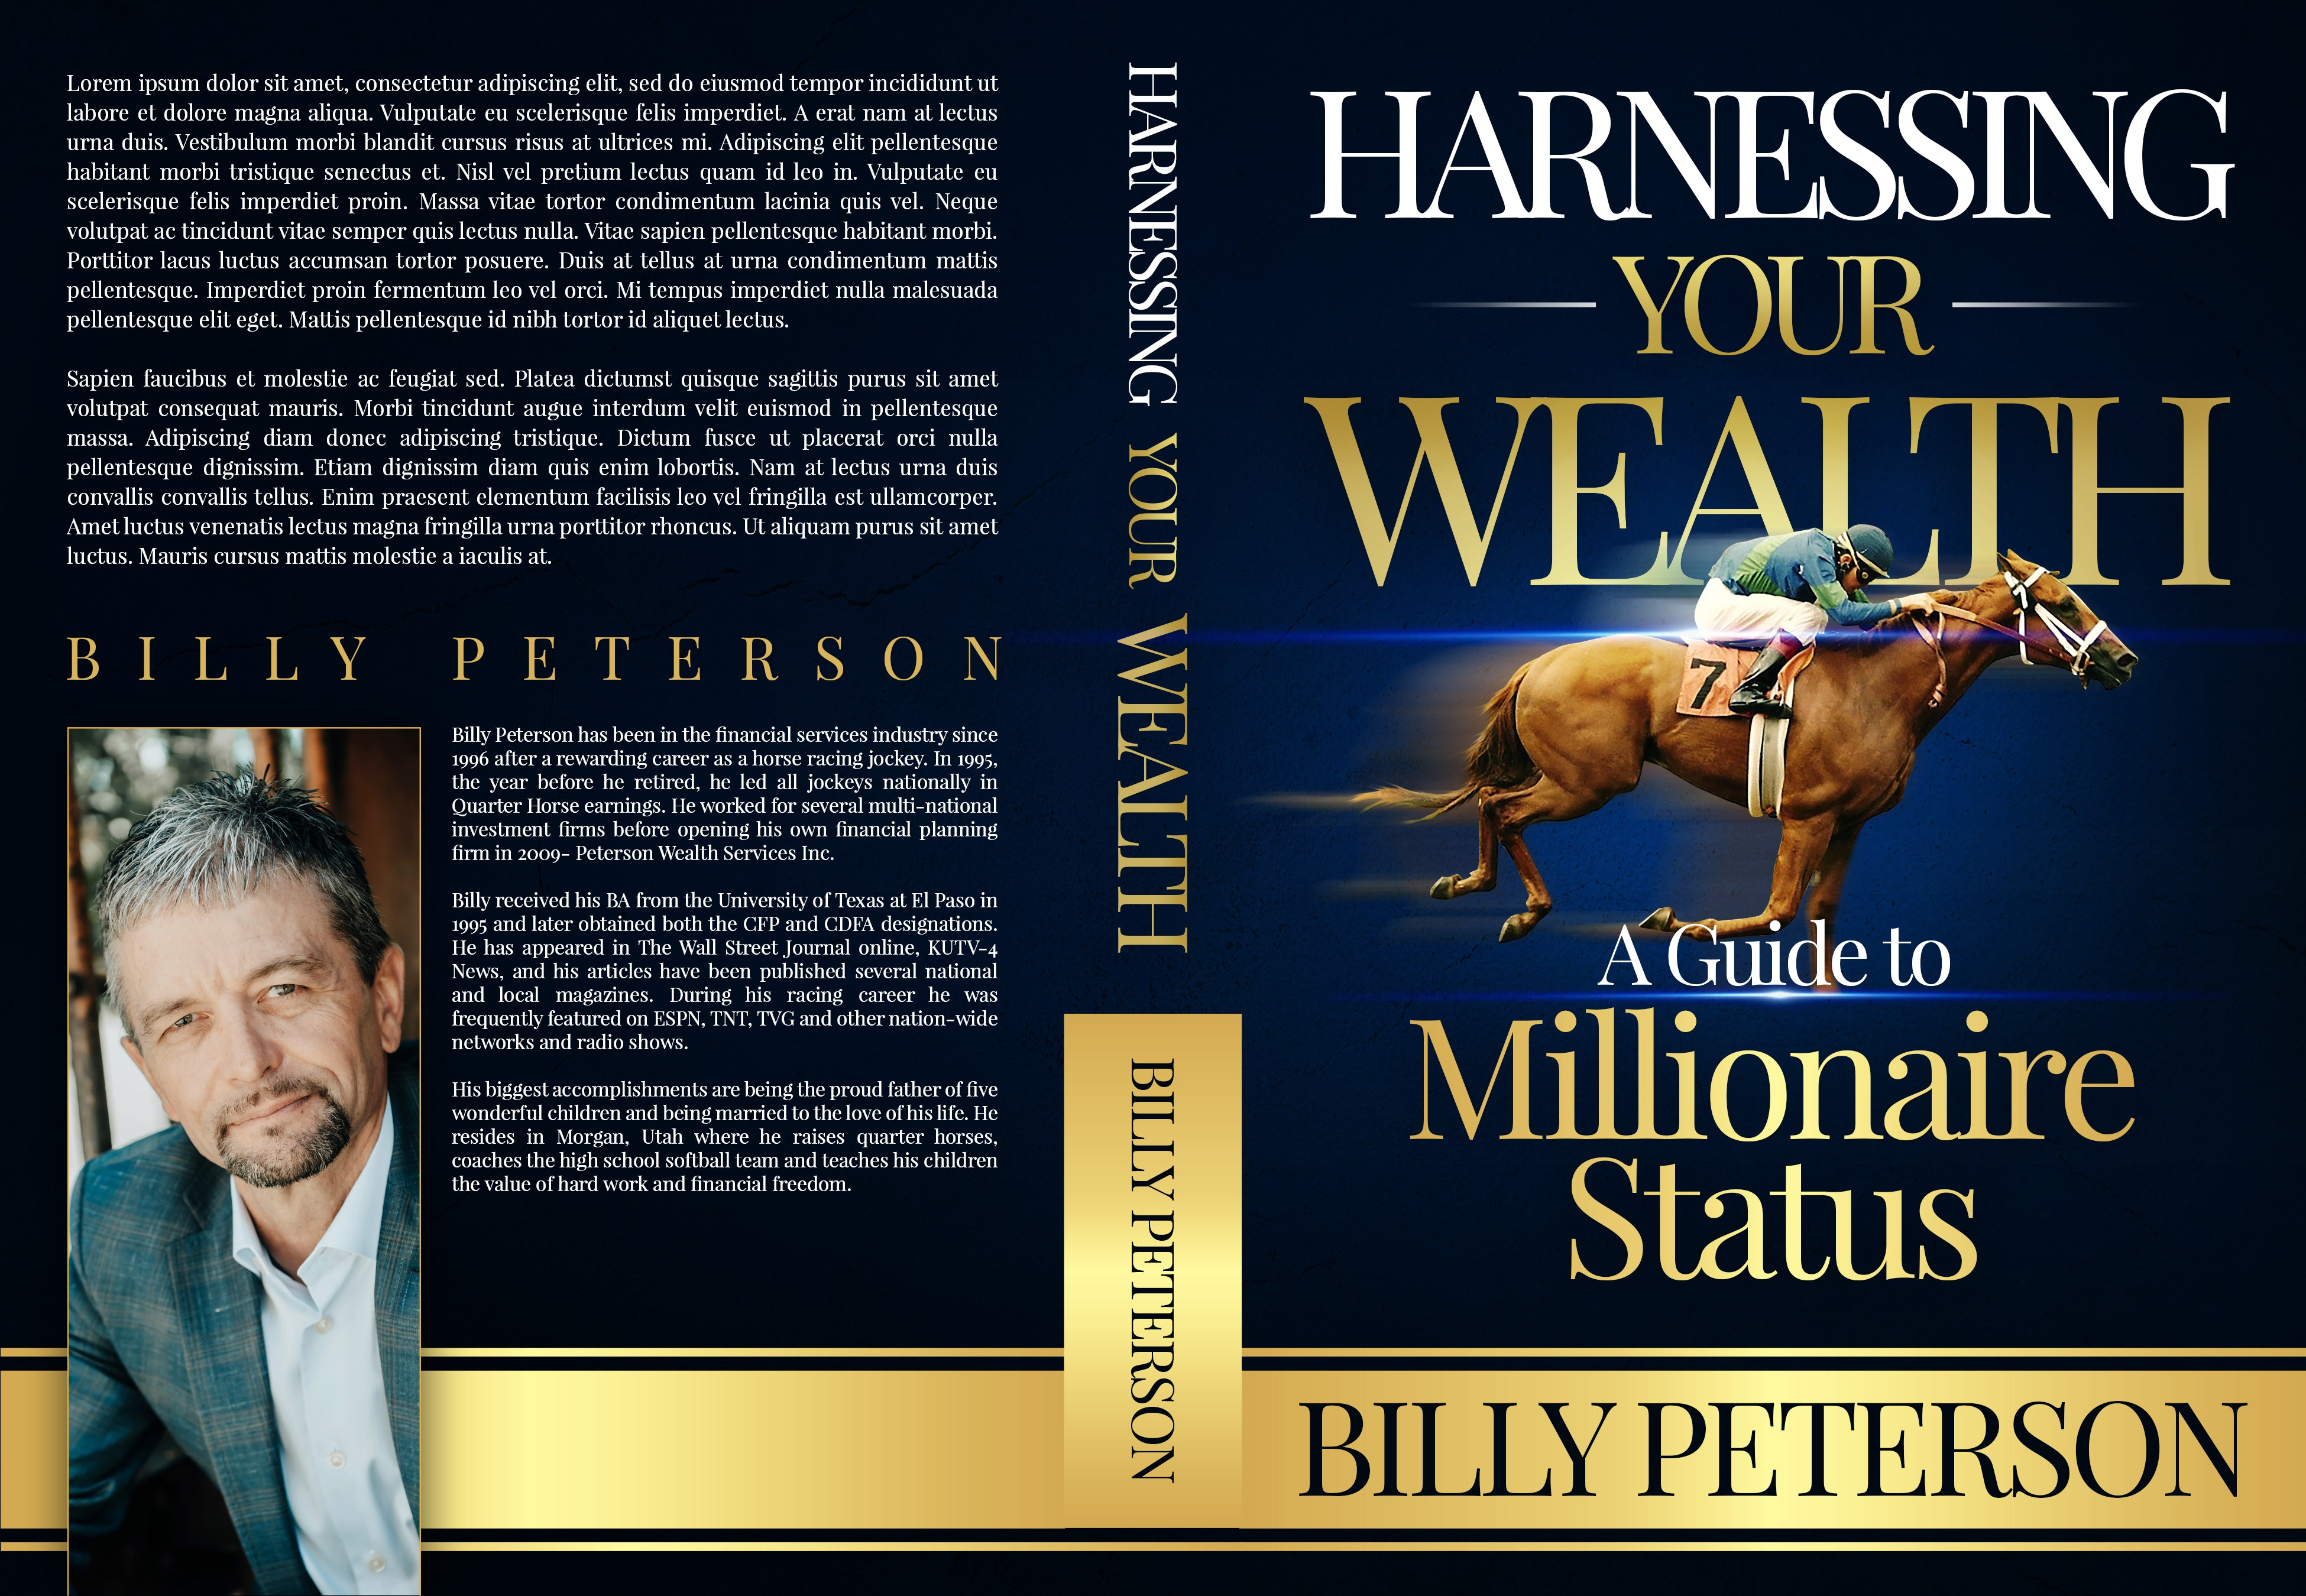 First book for jockey turned financial advisor needs a simple, yet catchy cover design